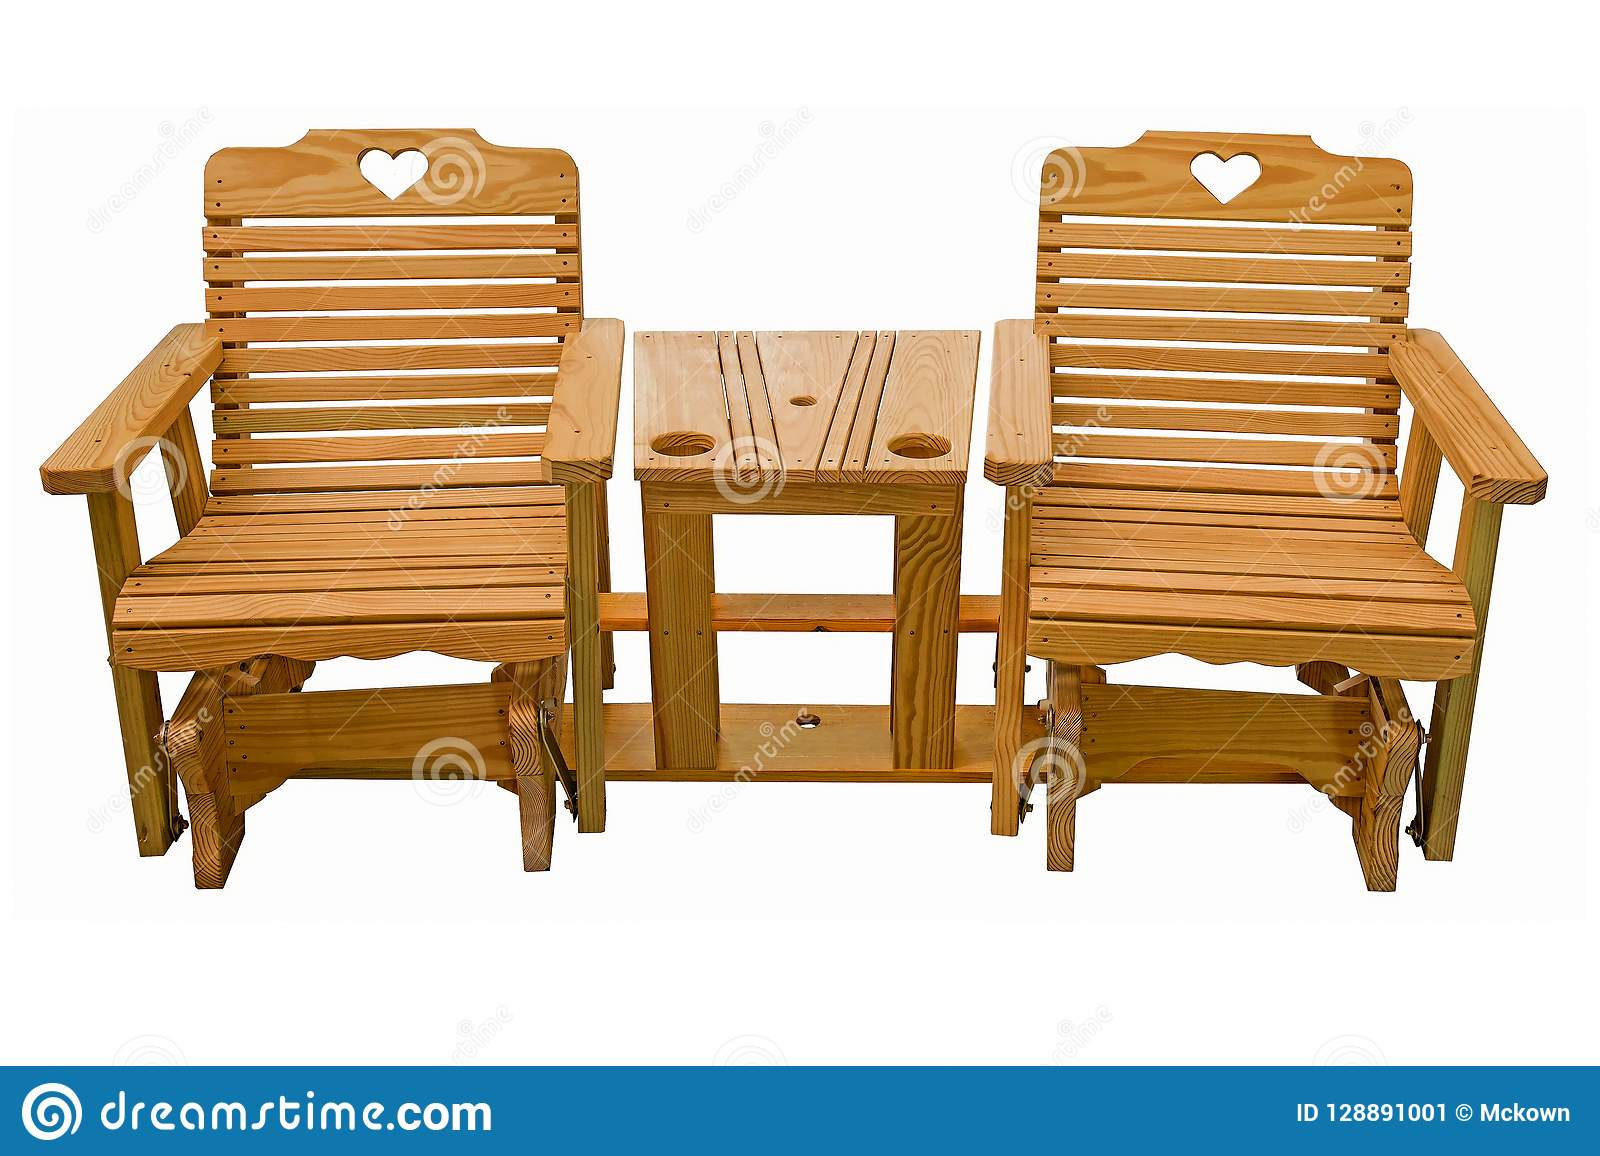 Amish Hand Made Outdoor Furniture Stock Image Image Of Chairs